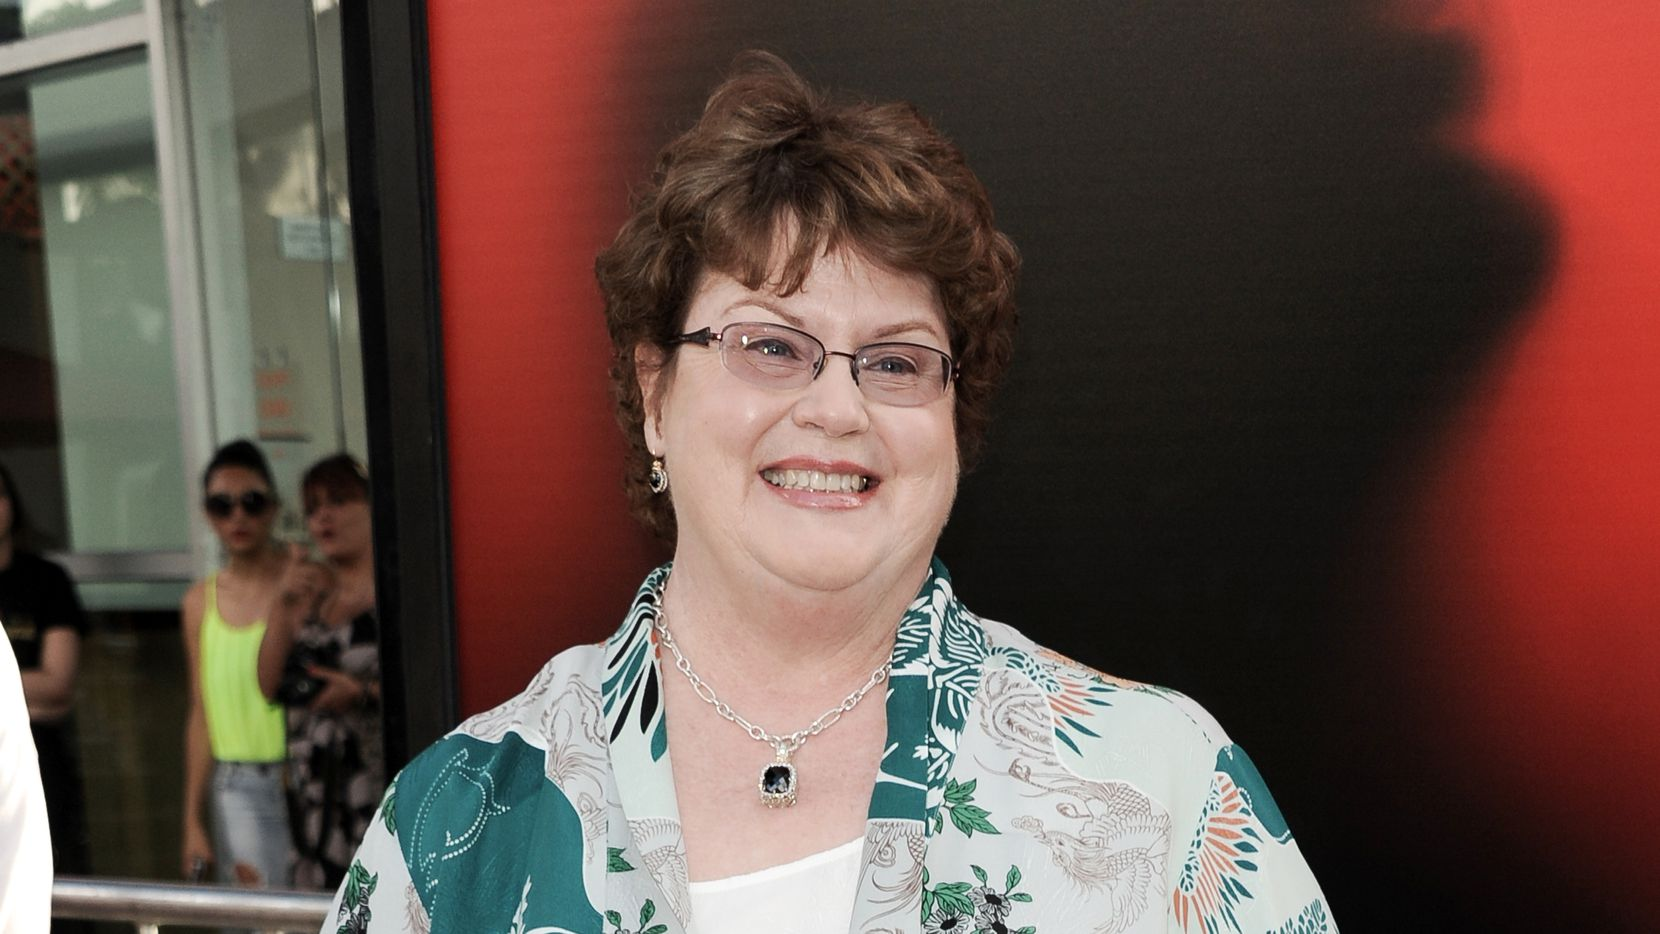 Author Charlaine Harris has proved to be a master at creating fanciful alternative worlds and populating them with believable characters.